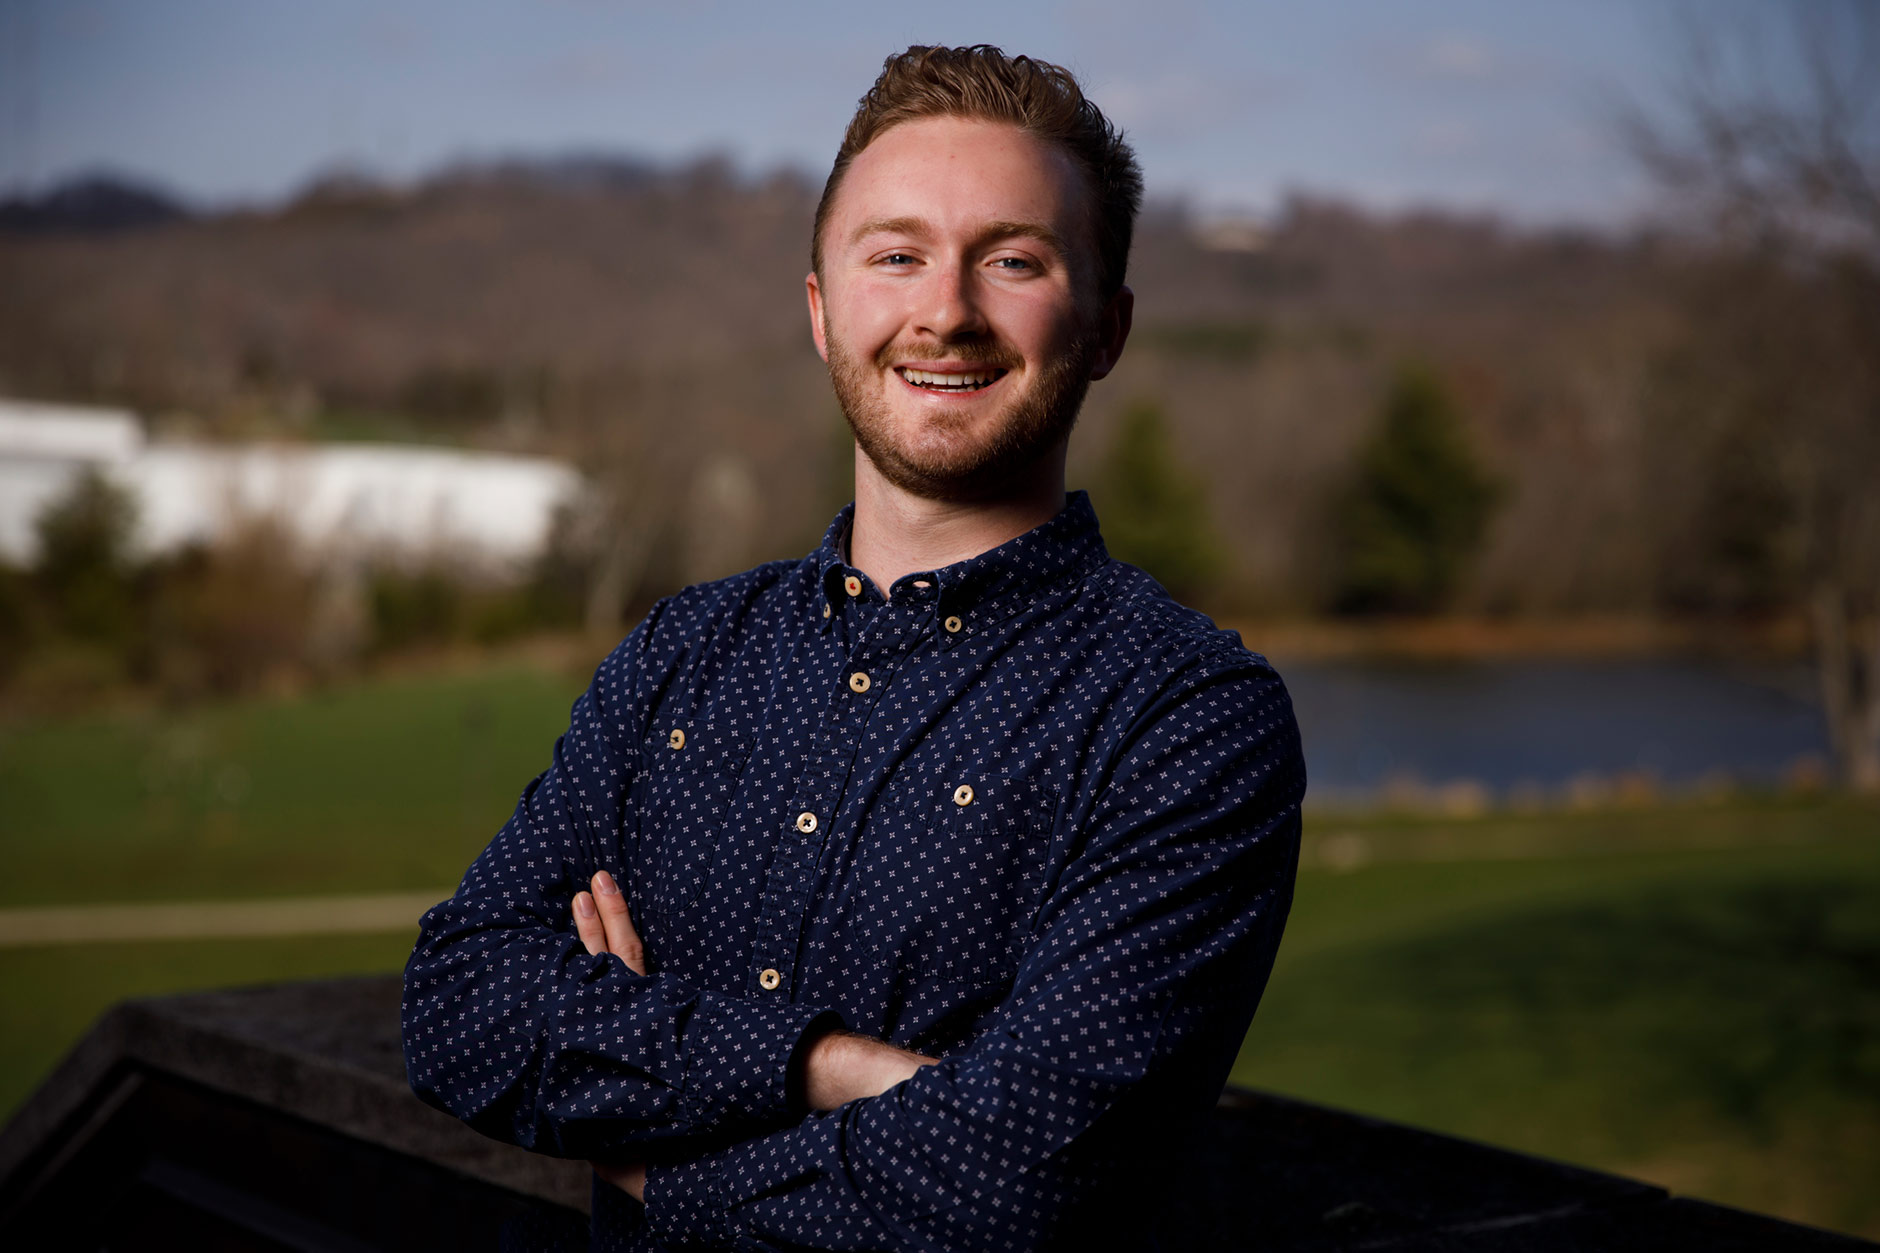 Roger Howard, a graduating senior at IU Southeast, poses for a portrait on the campus in New Albany on Tuesday, April 3, 2018. (James Brosher/IU Communications)